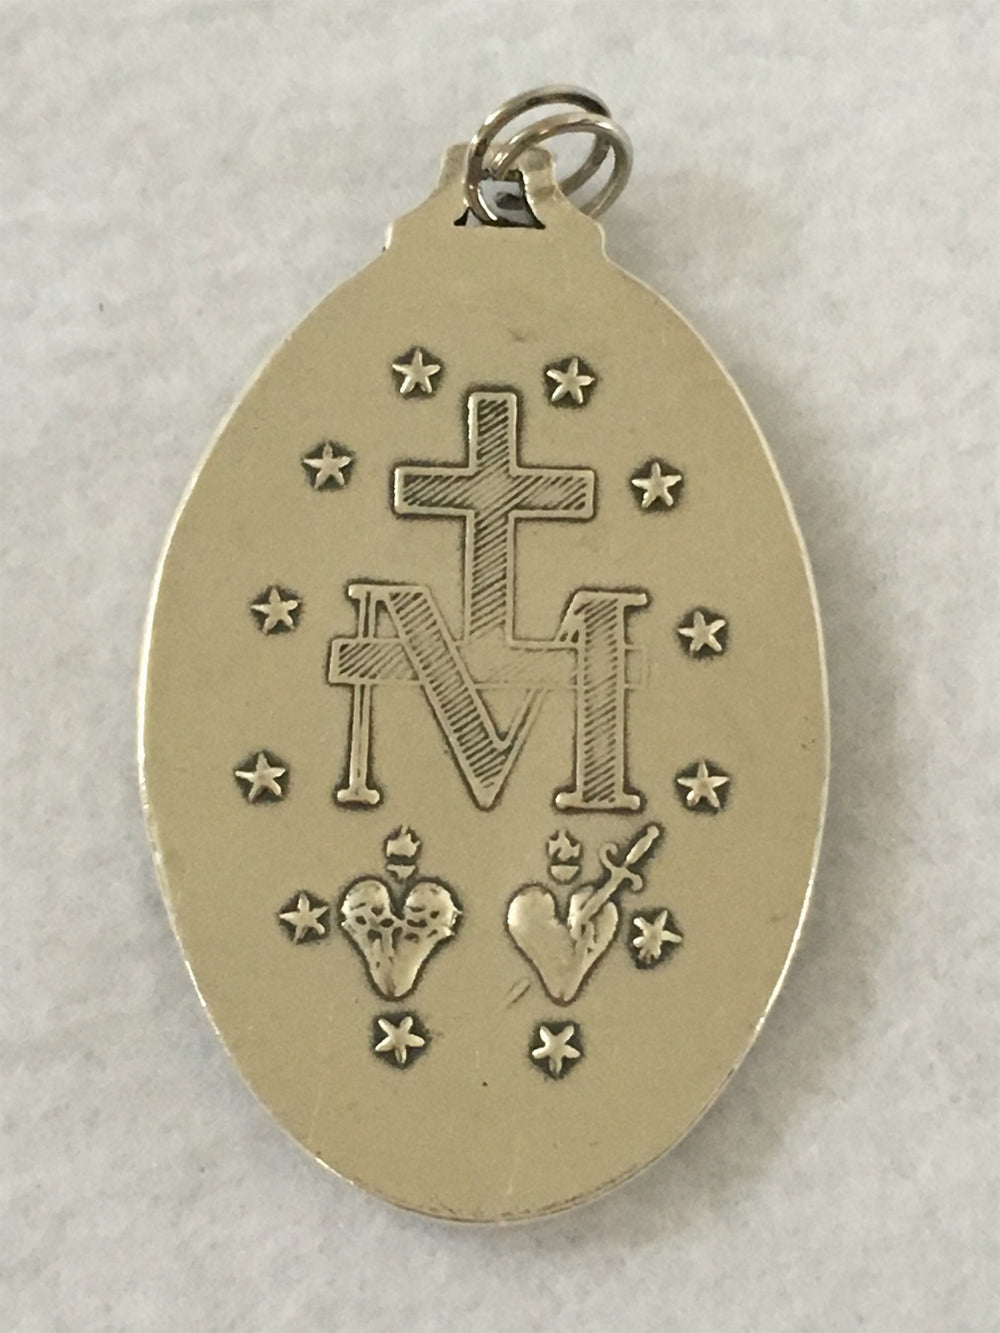 Miraculous Medal - Large